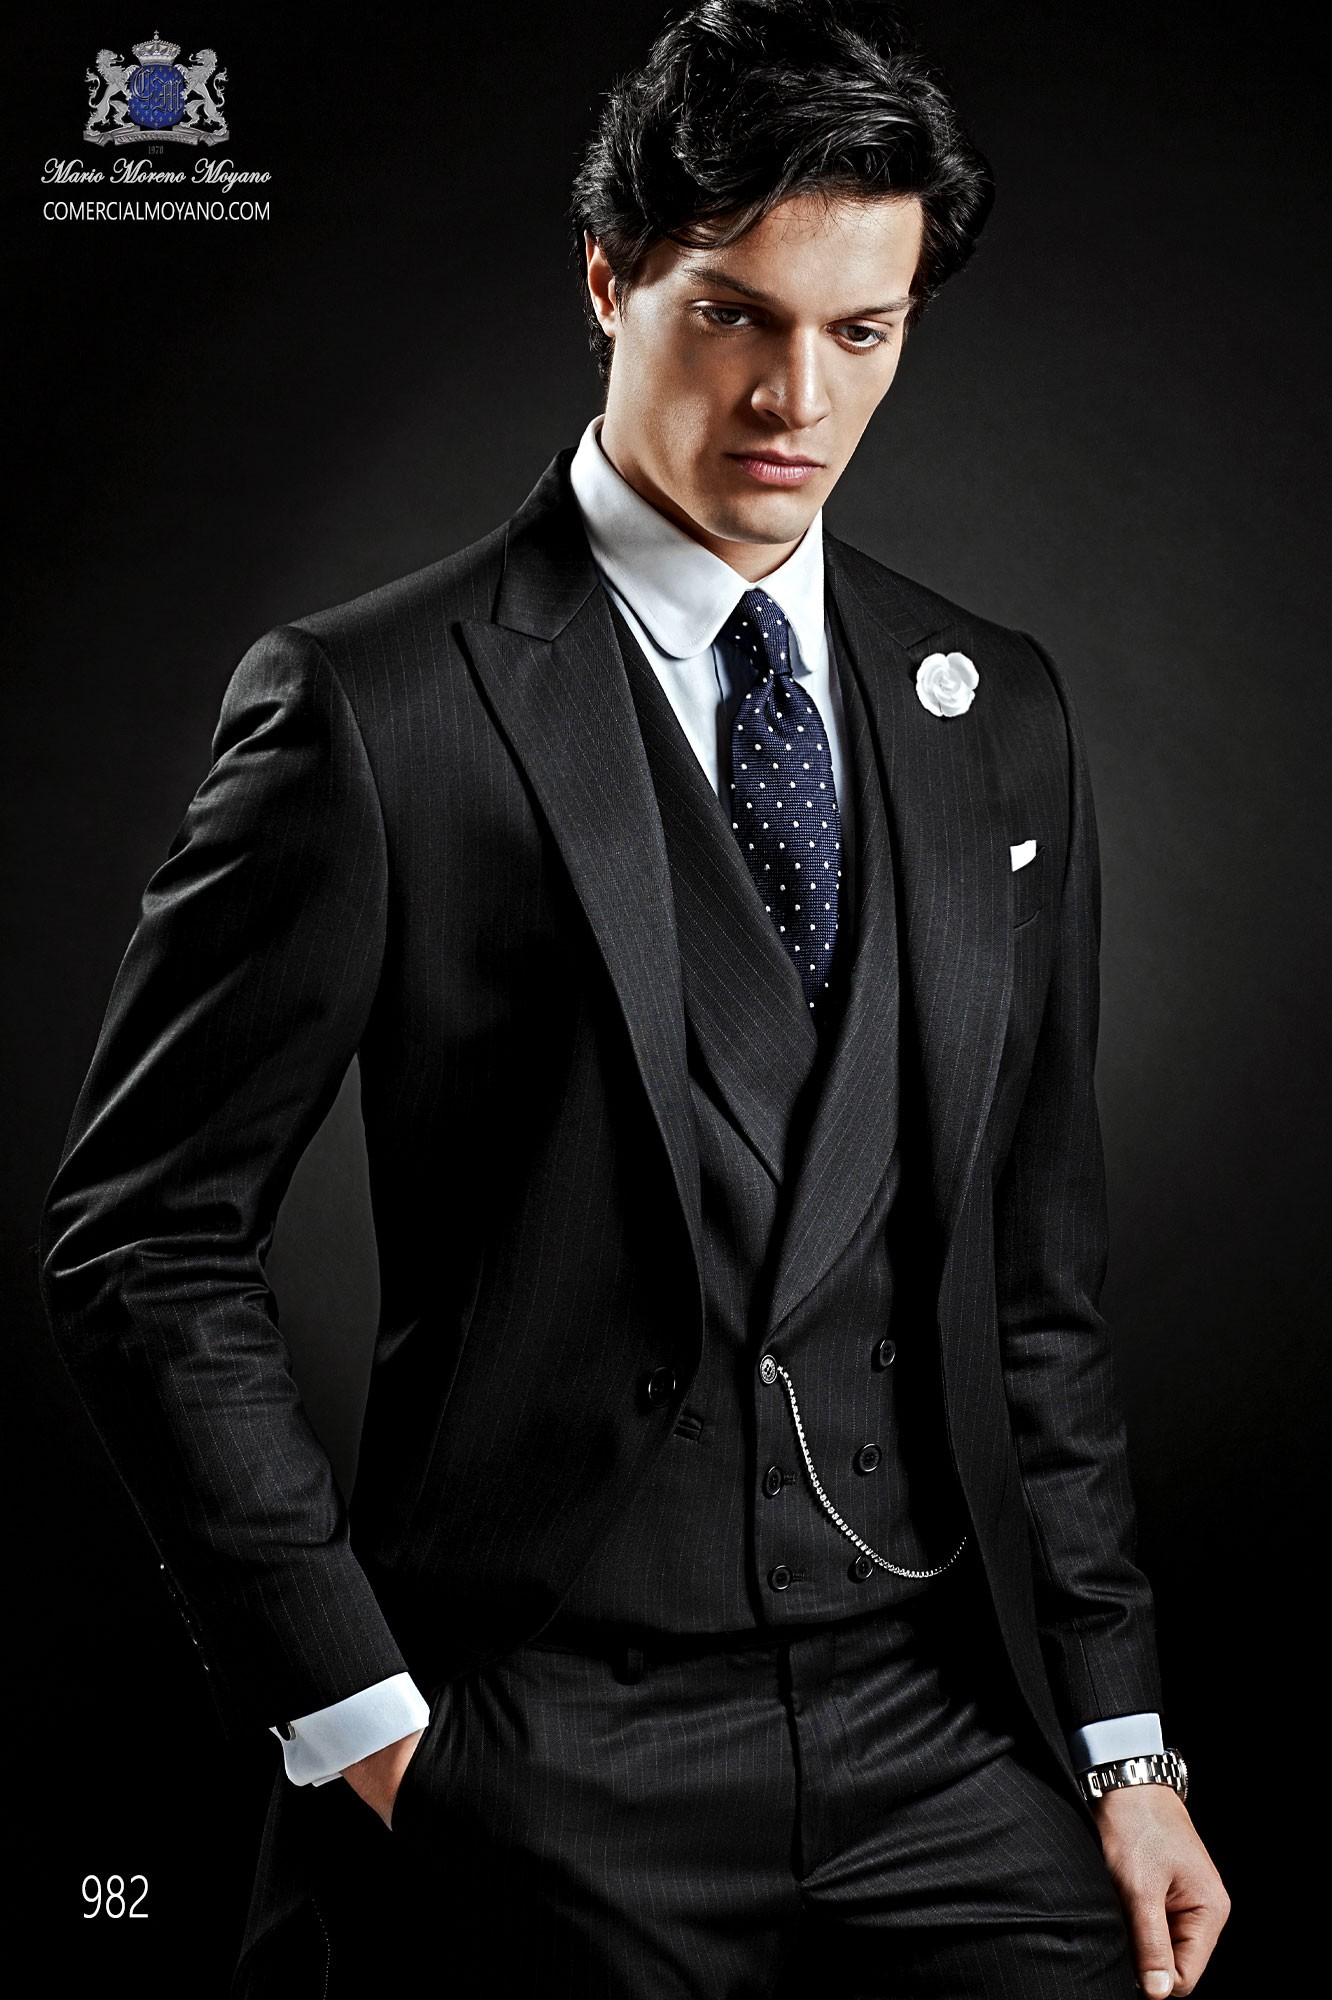 Gentleman black men wedding suit, model: 982 Ottavio Nuccio Gala ...